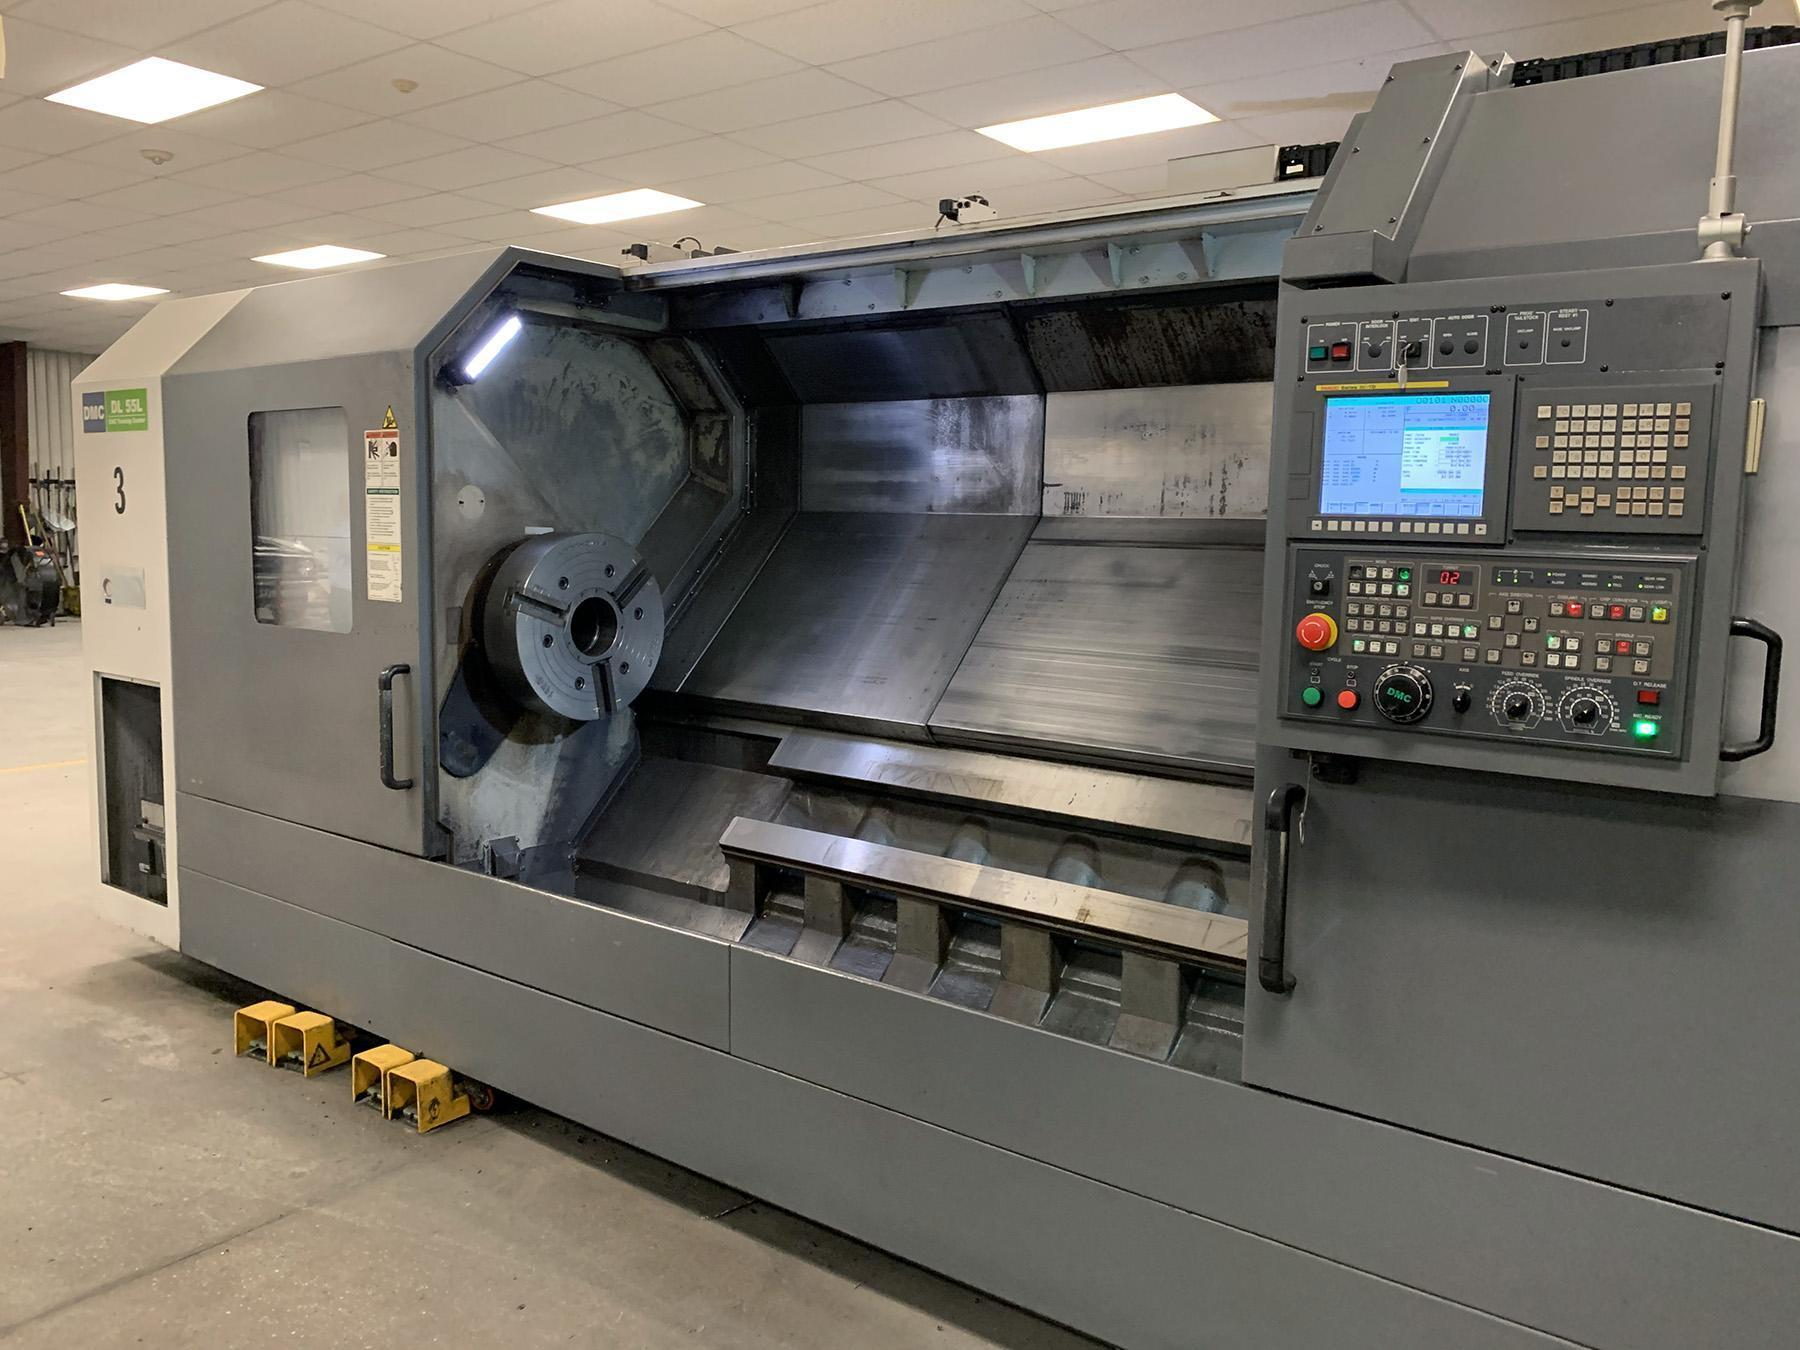 USED, DMC DL 55L CNC TURNING CENTER